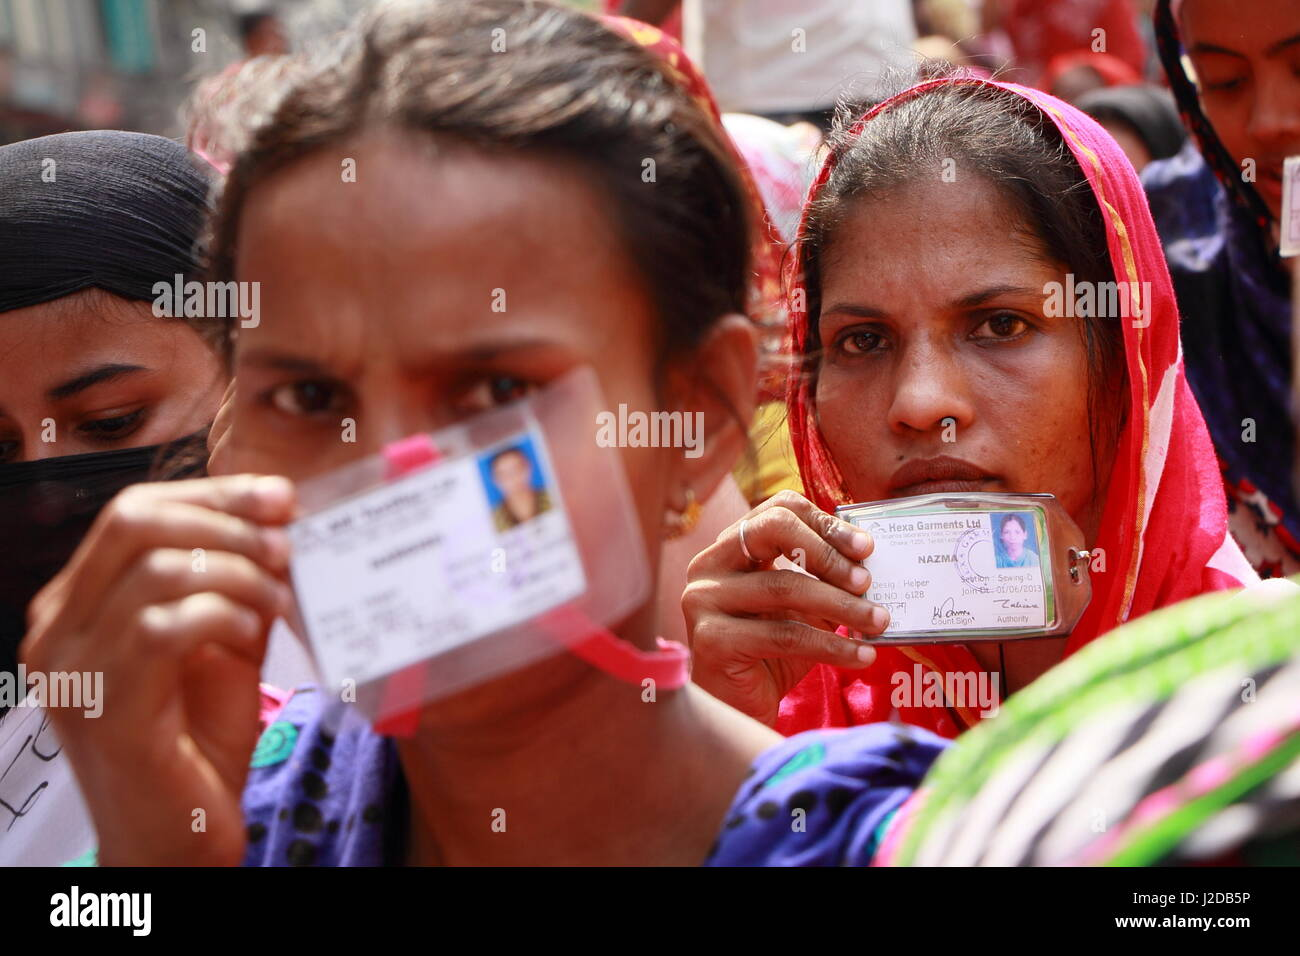 Dhaka, Bangladesh. 27th Apr, 2017. Two workers show ID cards during demonstrations in Dhaka, capital of Bangladesh, - Stock Image